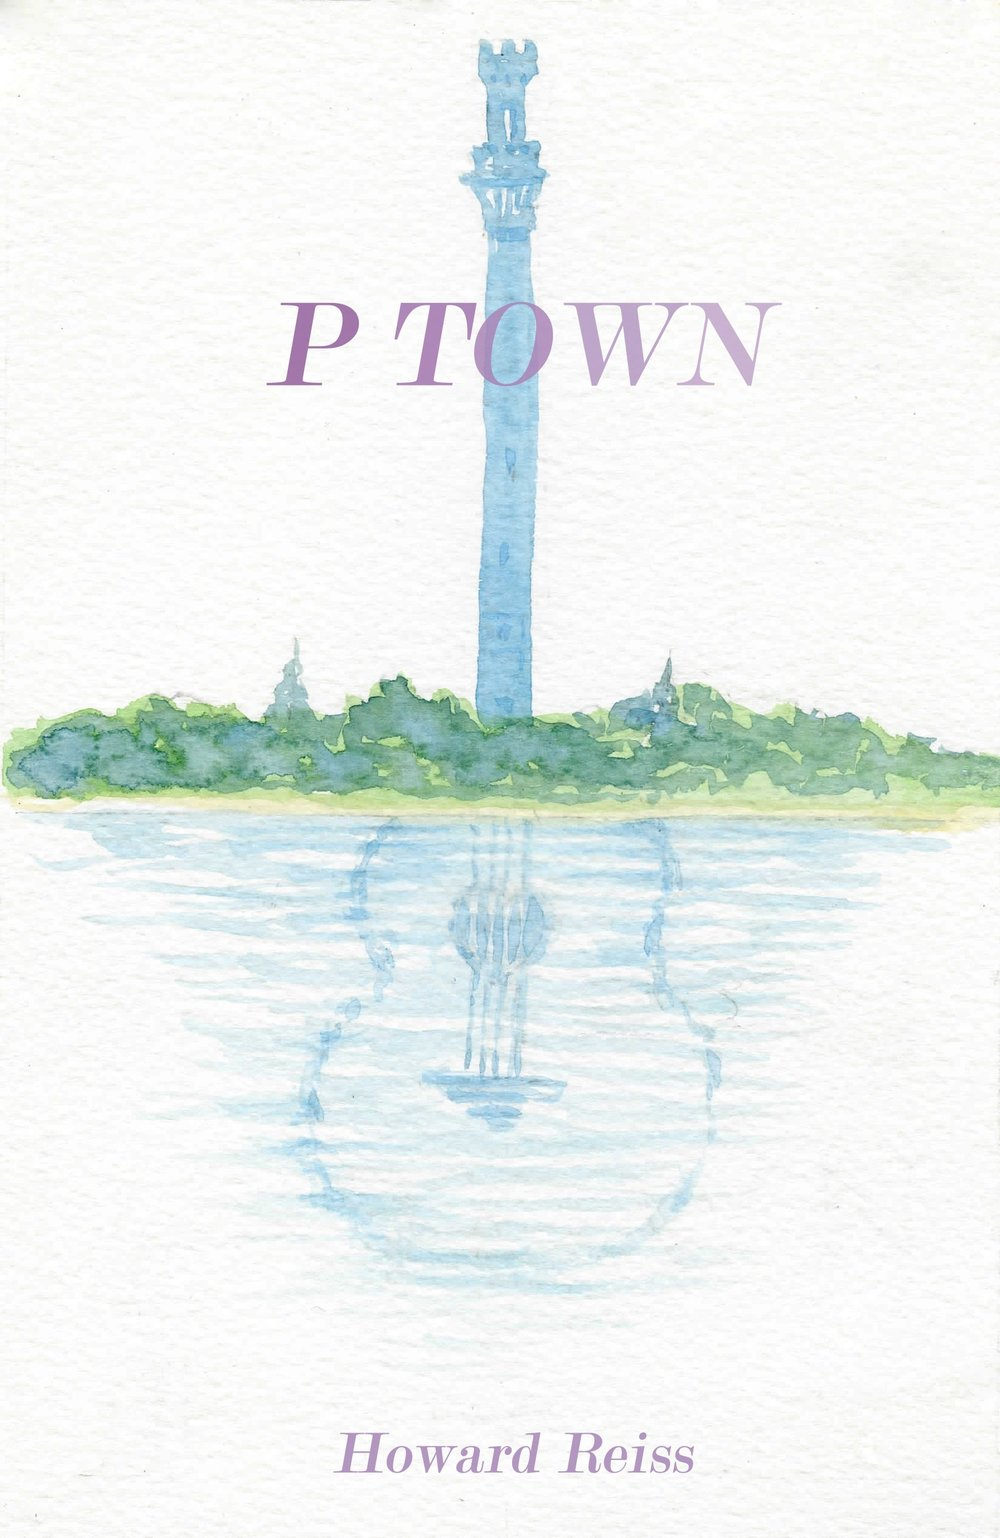 ptownfinalcover.jpg